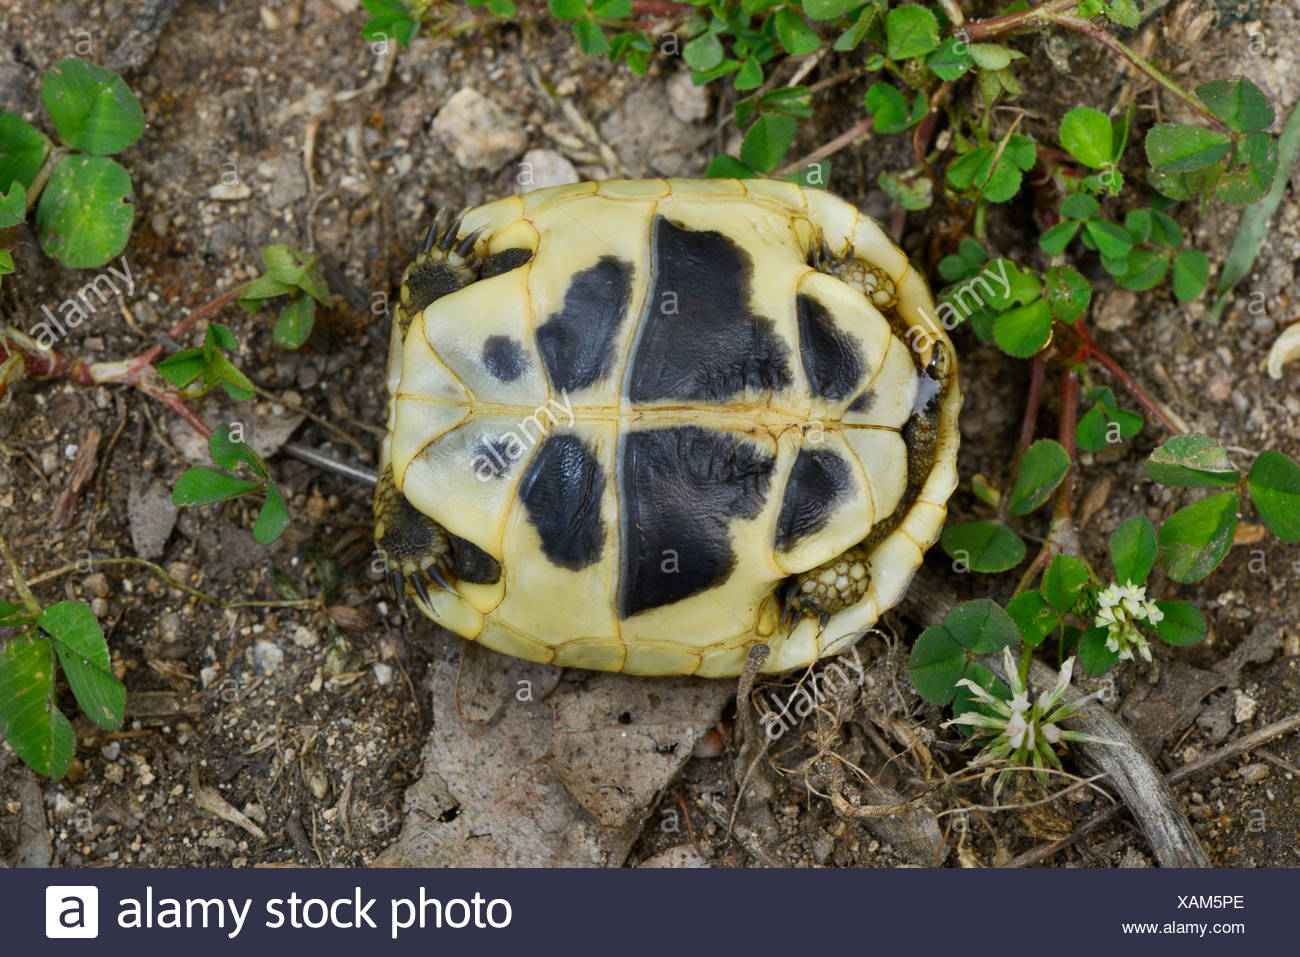 Hermanns tortoise, Greek tortoise, Boettgers tortoise (Testudo hermanni boettgeri), underside (plastron) of a young Greek toirtoise, Bulgaria, Pirin-Gebirge Stock Photo